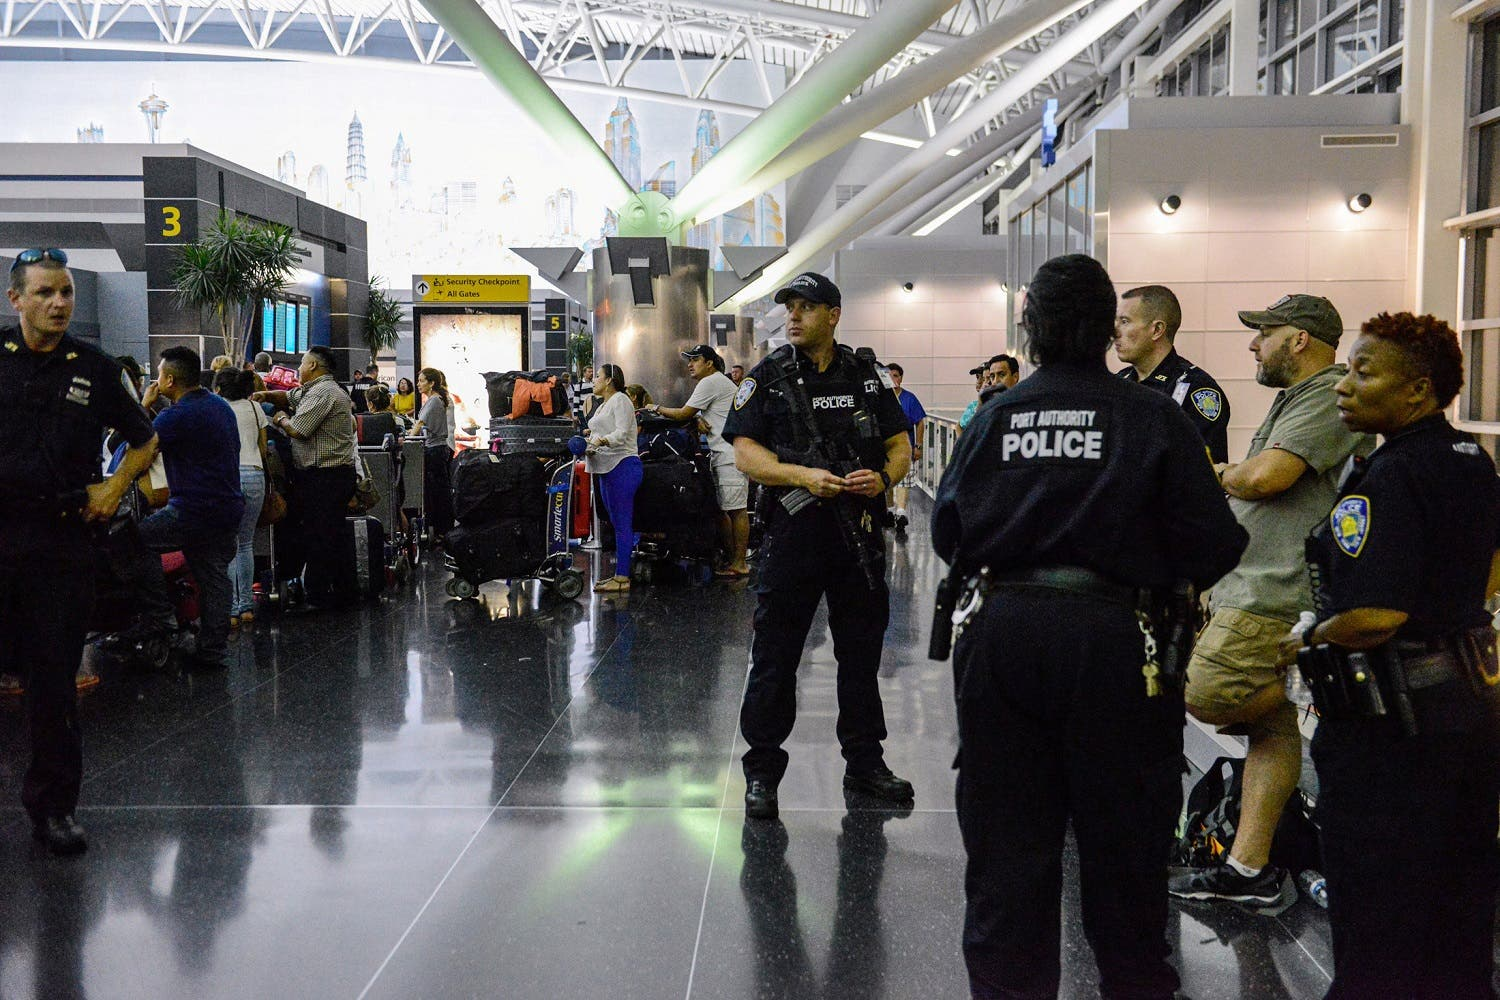 Members of the Port Authority Police Department stand guard at Terminal 8 at John F. Kennedy airport in the Queens borough of New York City. (Reuters)